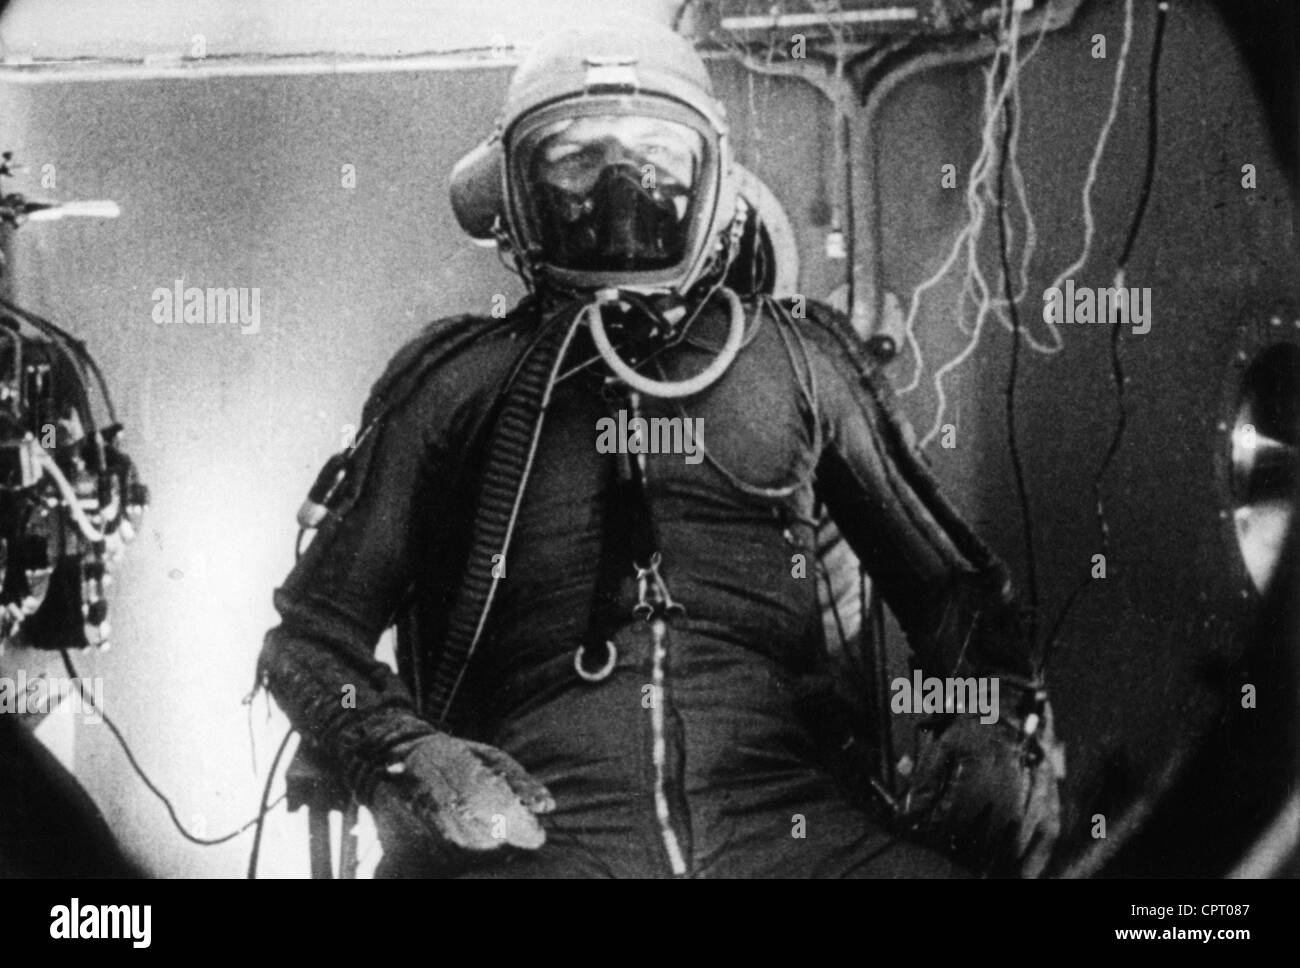 Gagarin, Yuri, 9.3.1934 - 27.3.1968, Soviet spaceman (cosmonaut), half length, in overall and with oxygen mask, - Stock Image